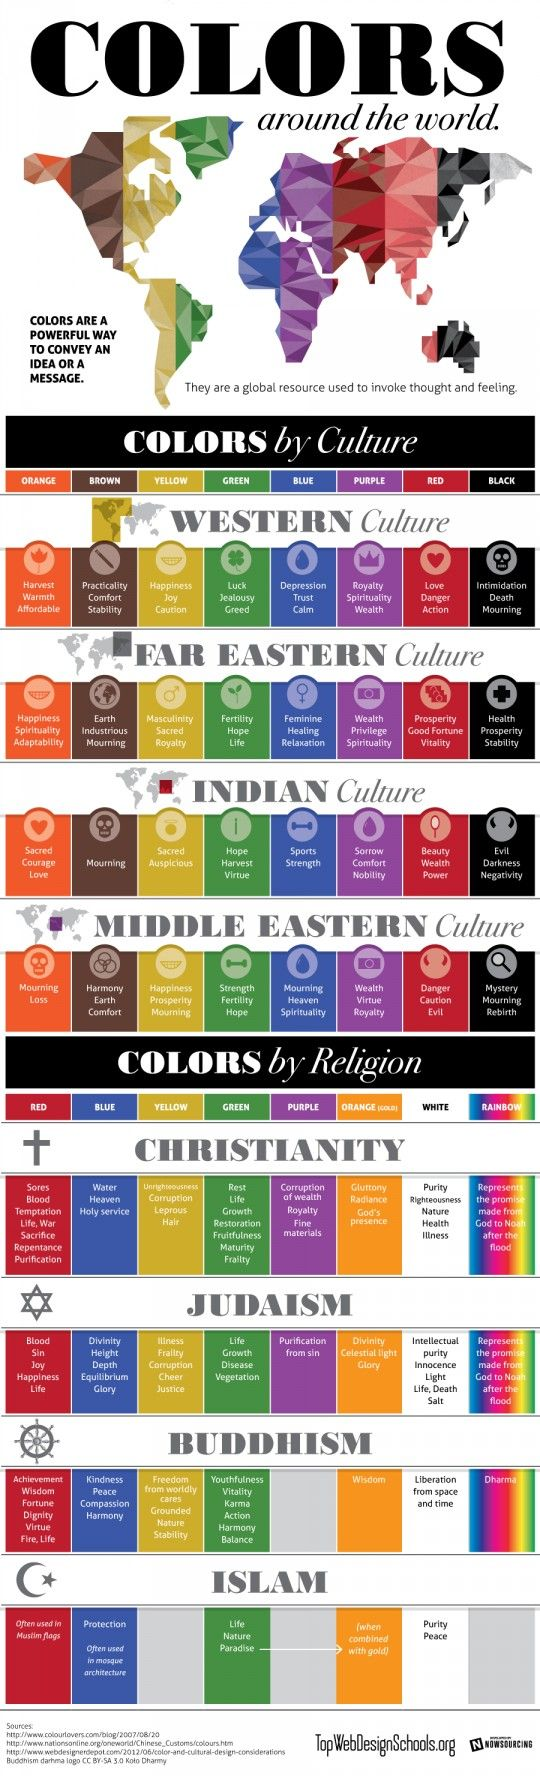 Colors Around The World and what they represent by culture and religion. #Infographic